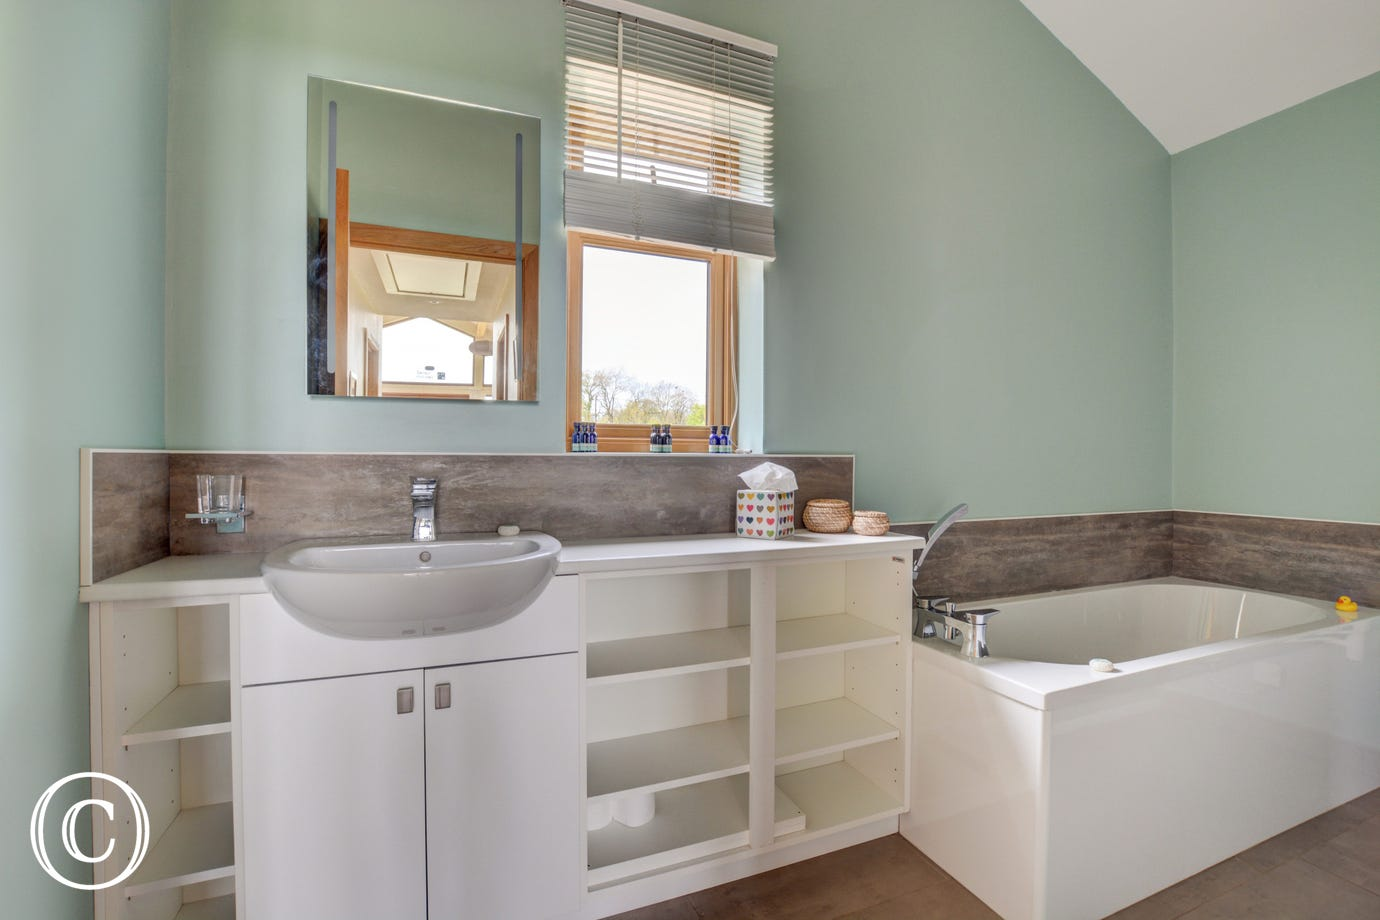 Spacious, light and airy bathroom